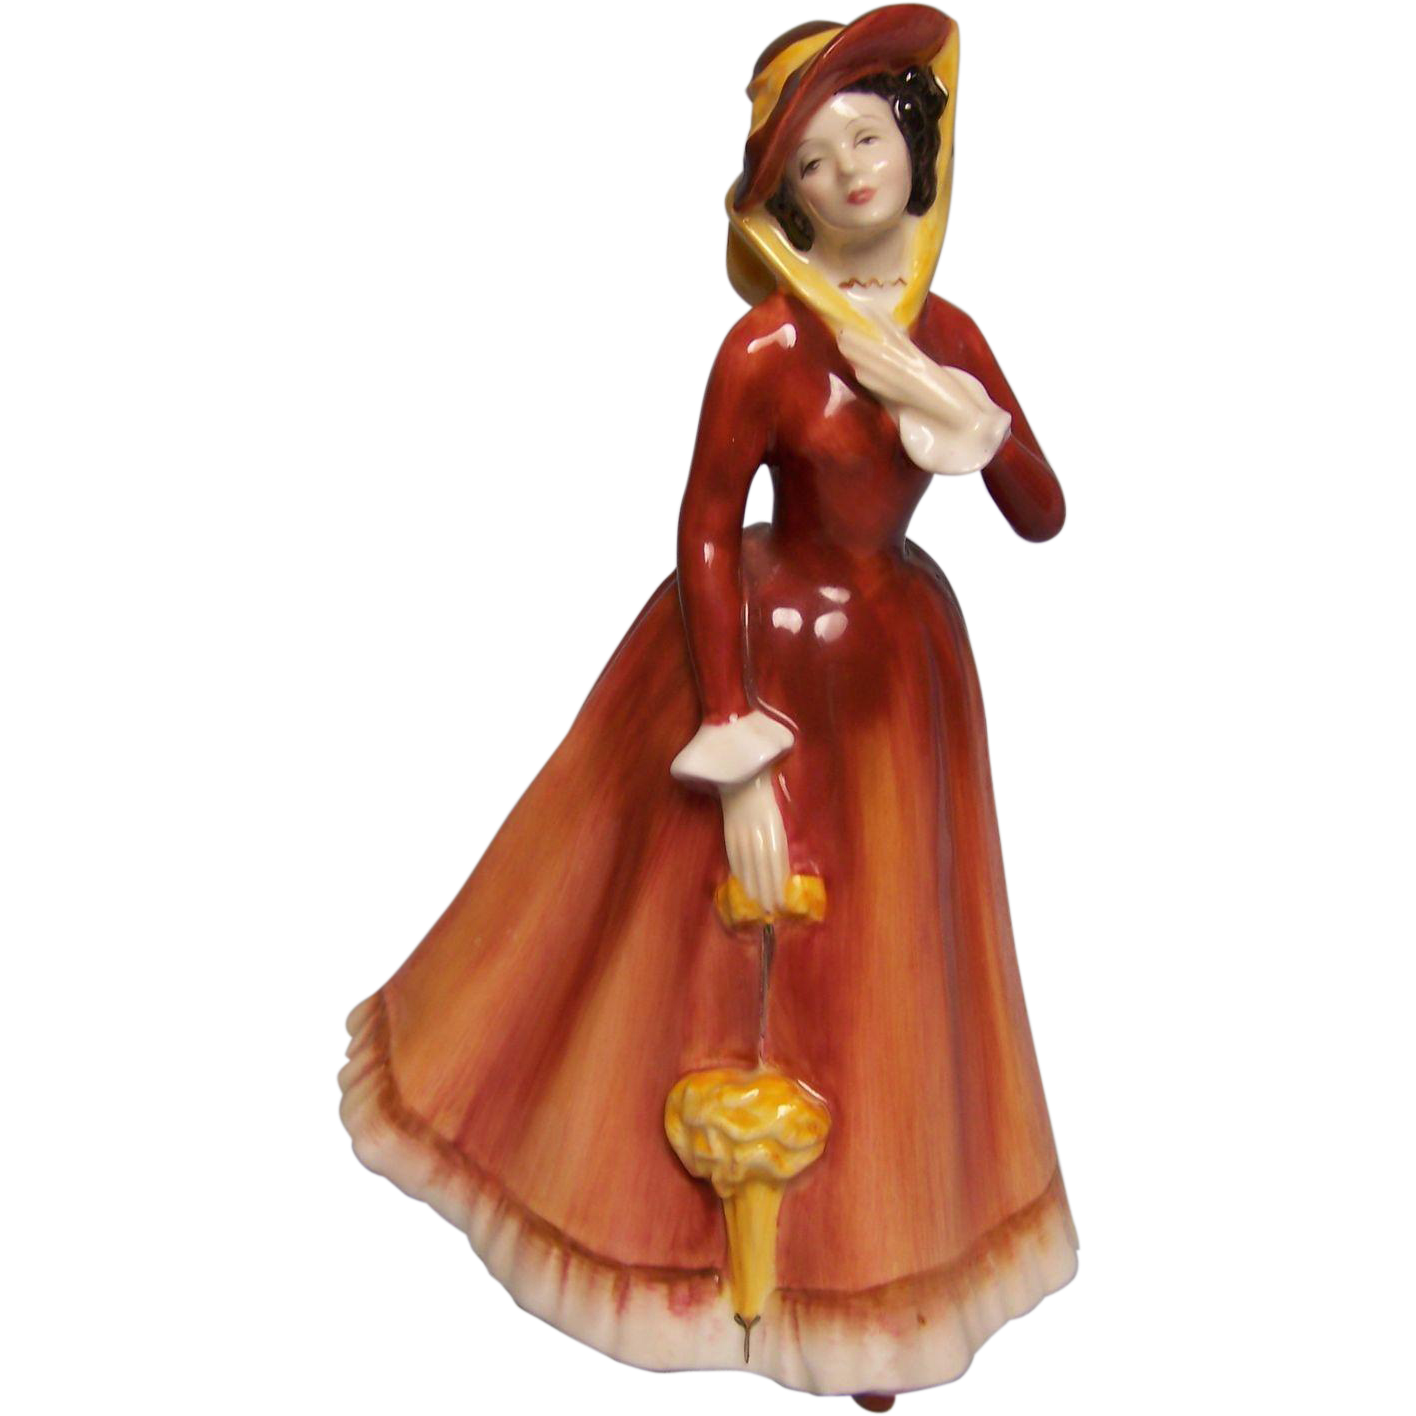 Royal Doulton Figurine Julia